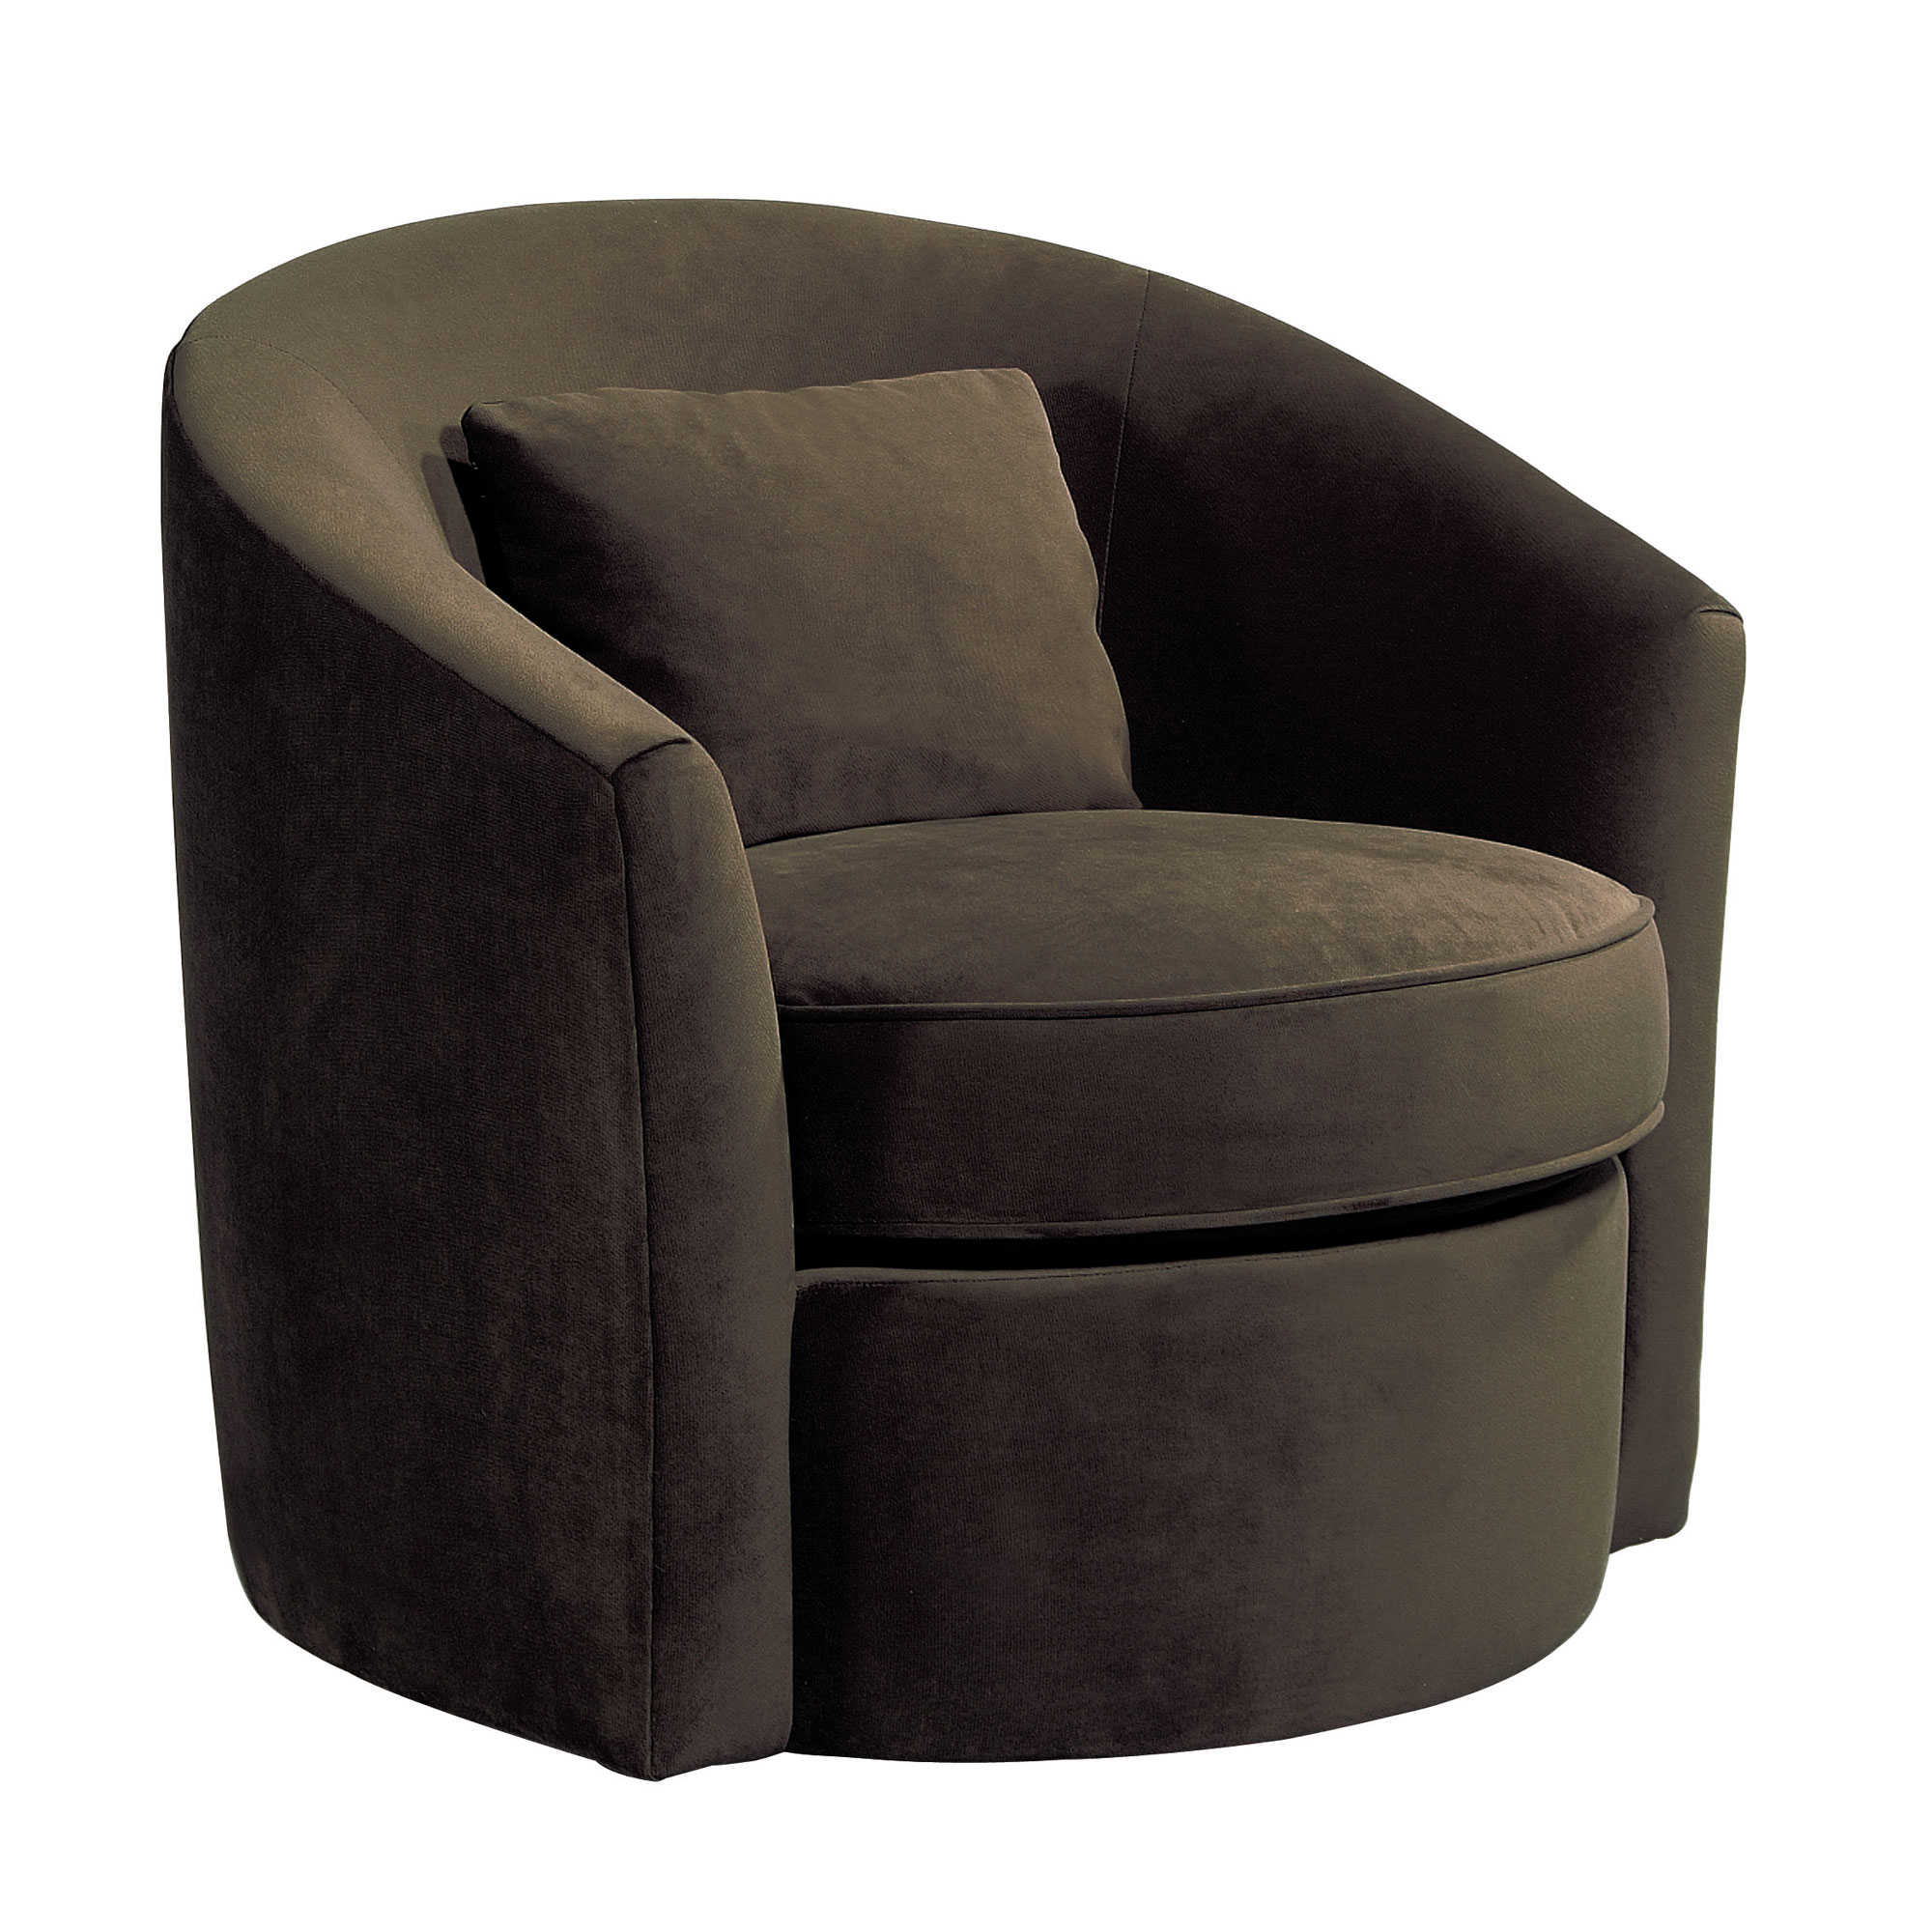 Trending Swivel Chair | Bernhardt Put a fun fabric on these for the small swivel armchair